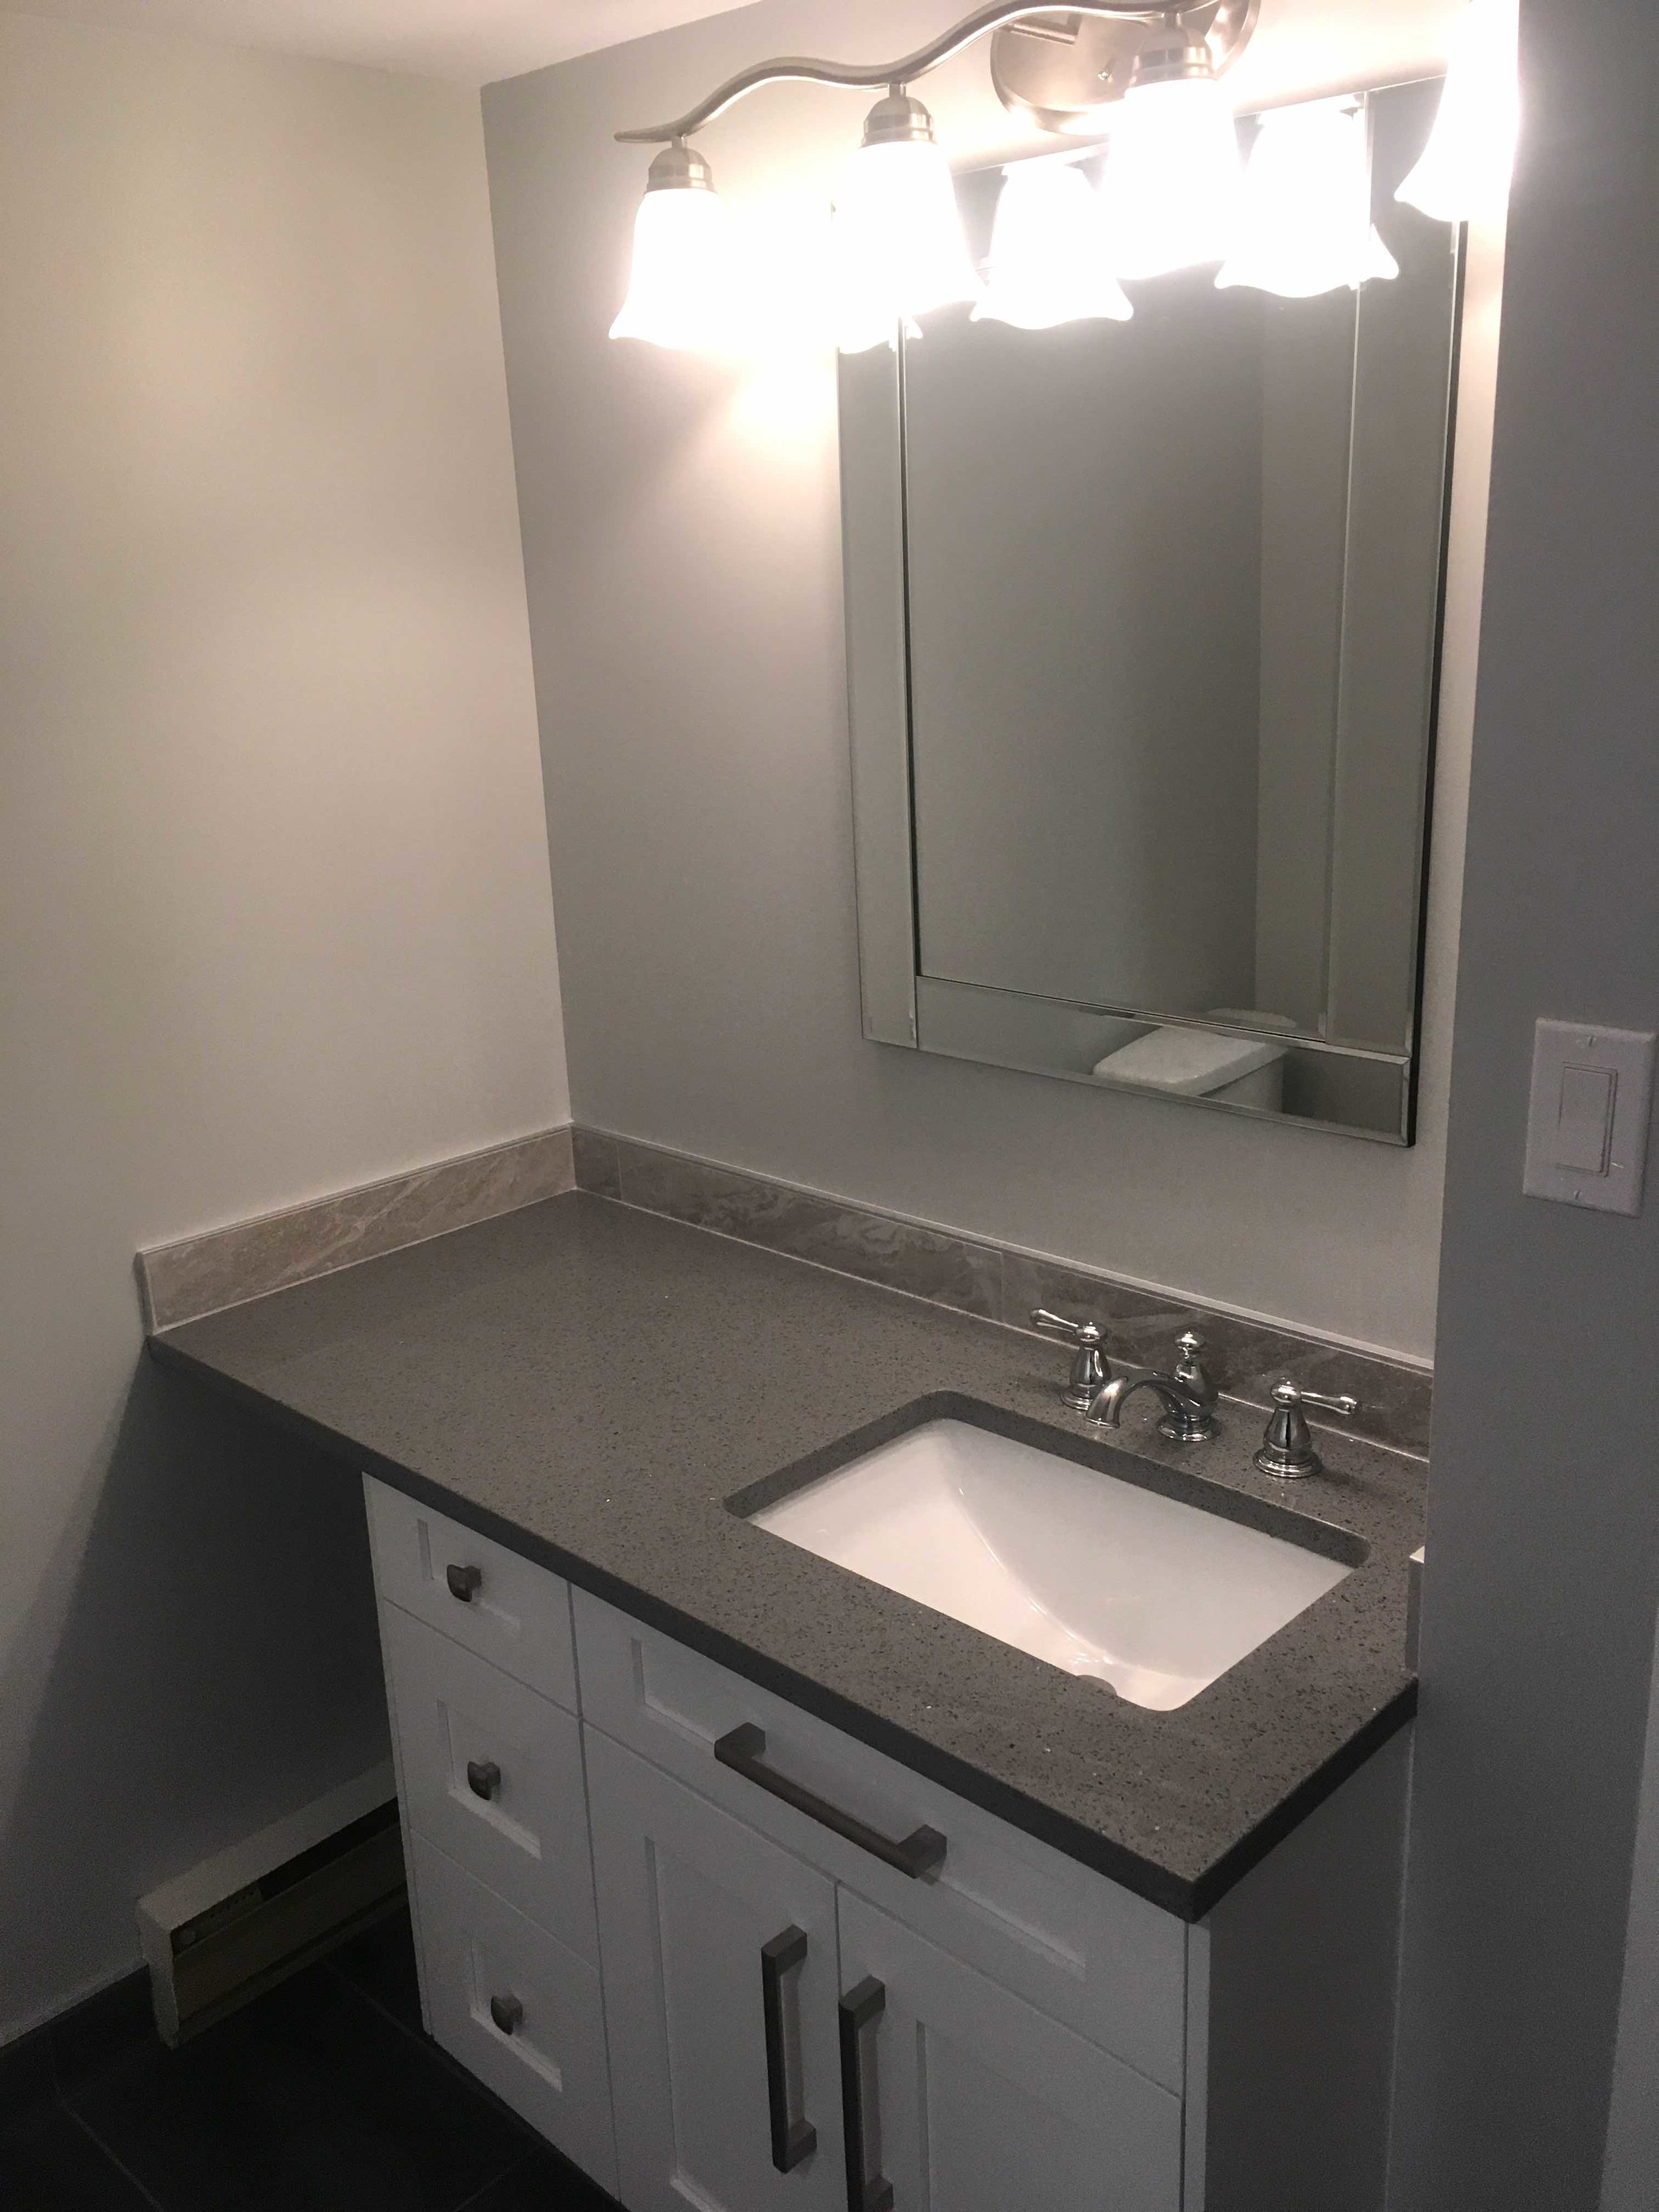 Bathroom renovation in a Kimberley, BC ski resort condo - after.